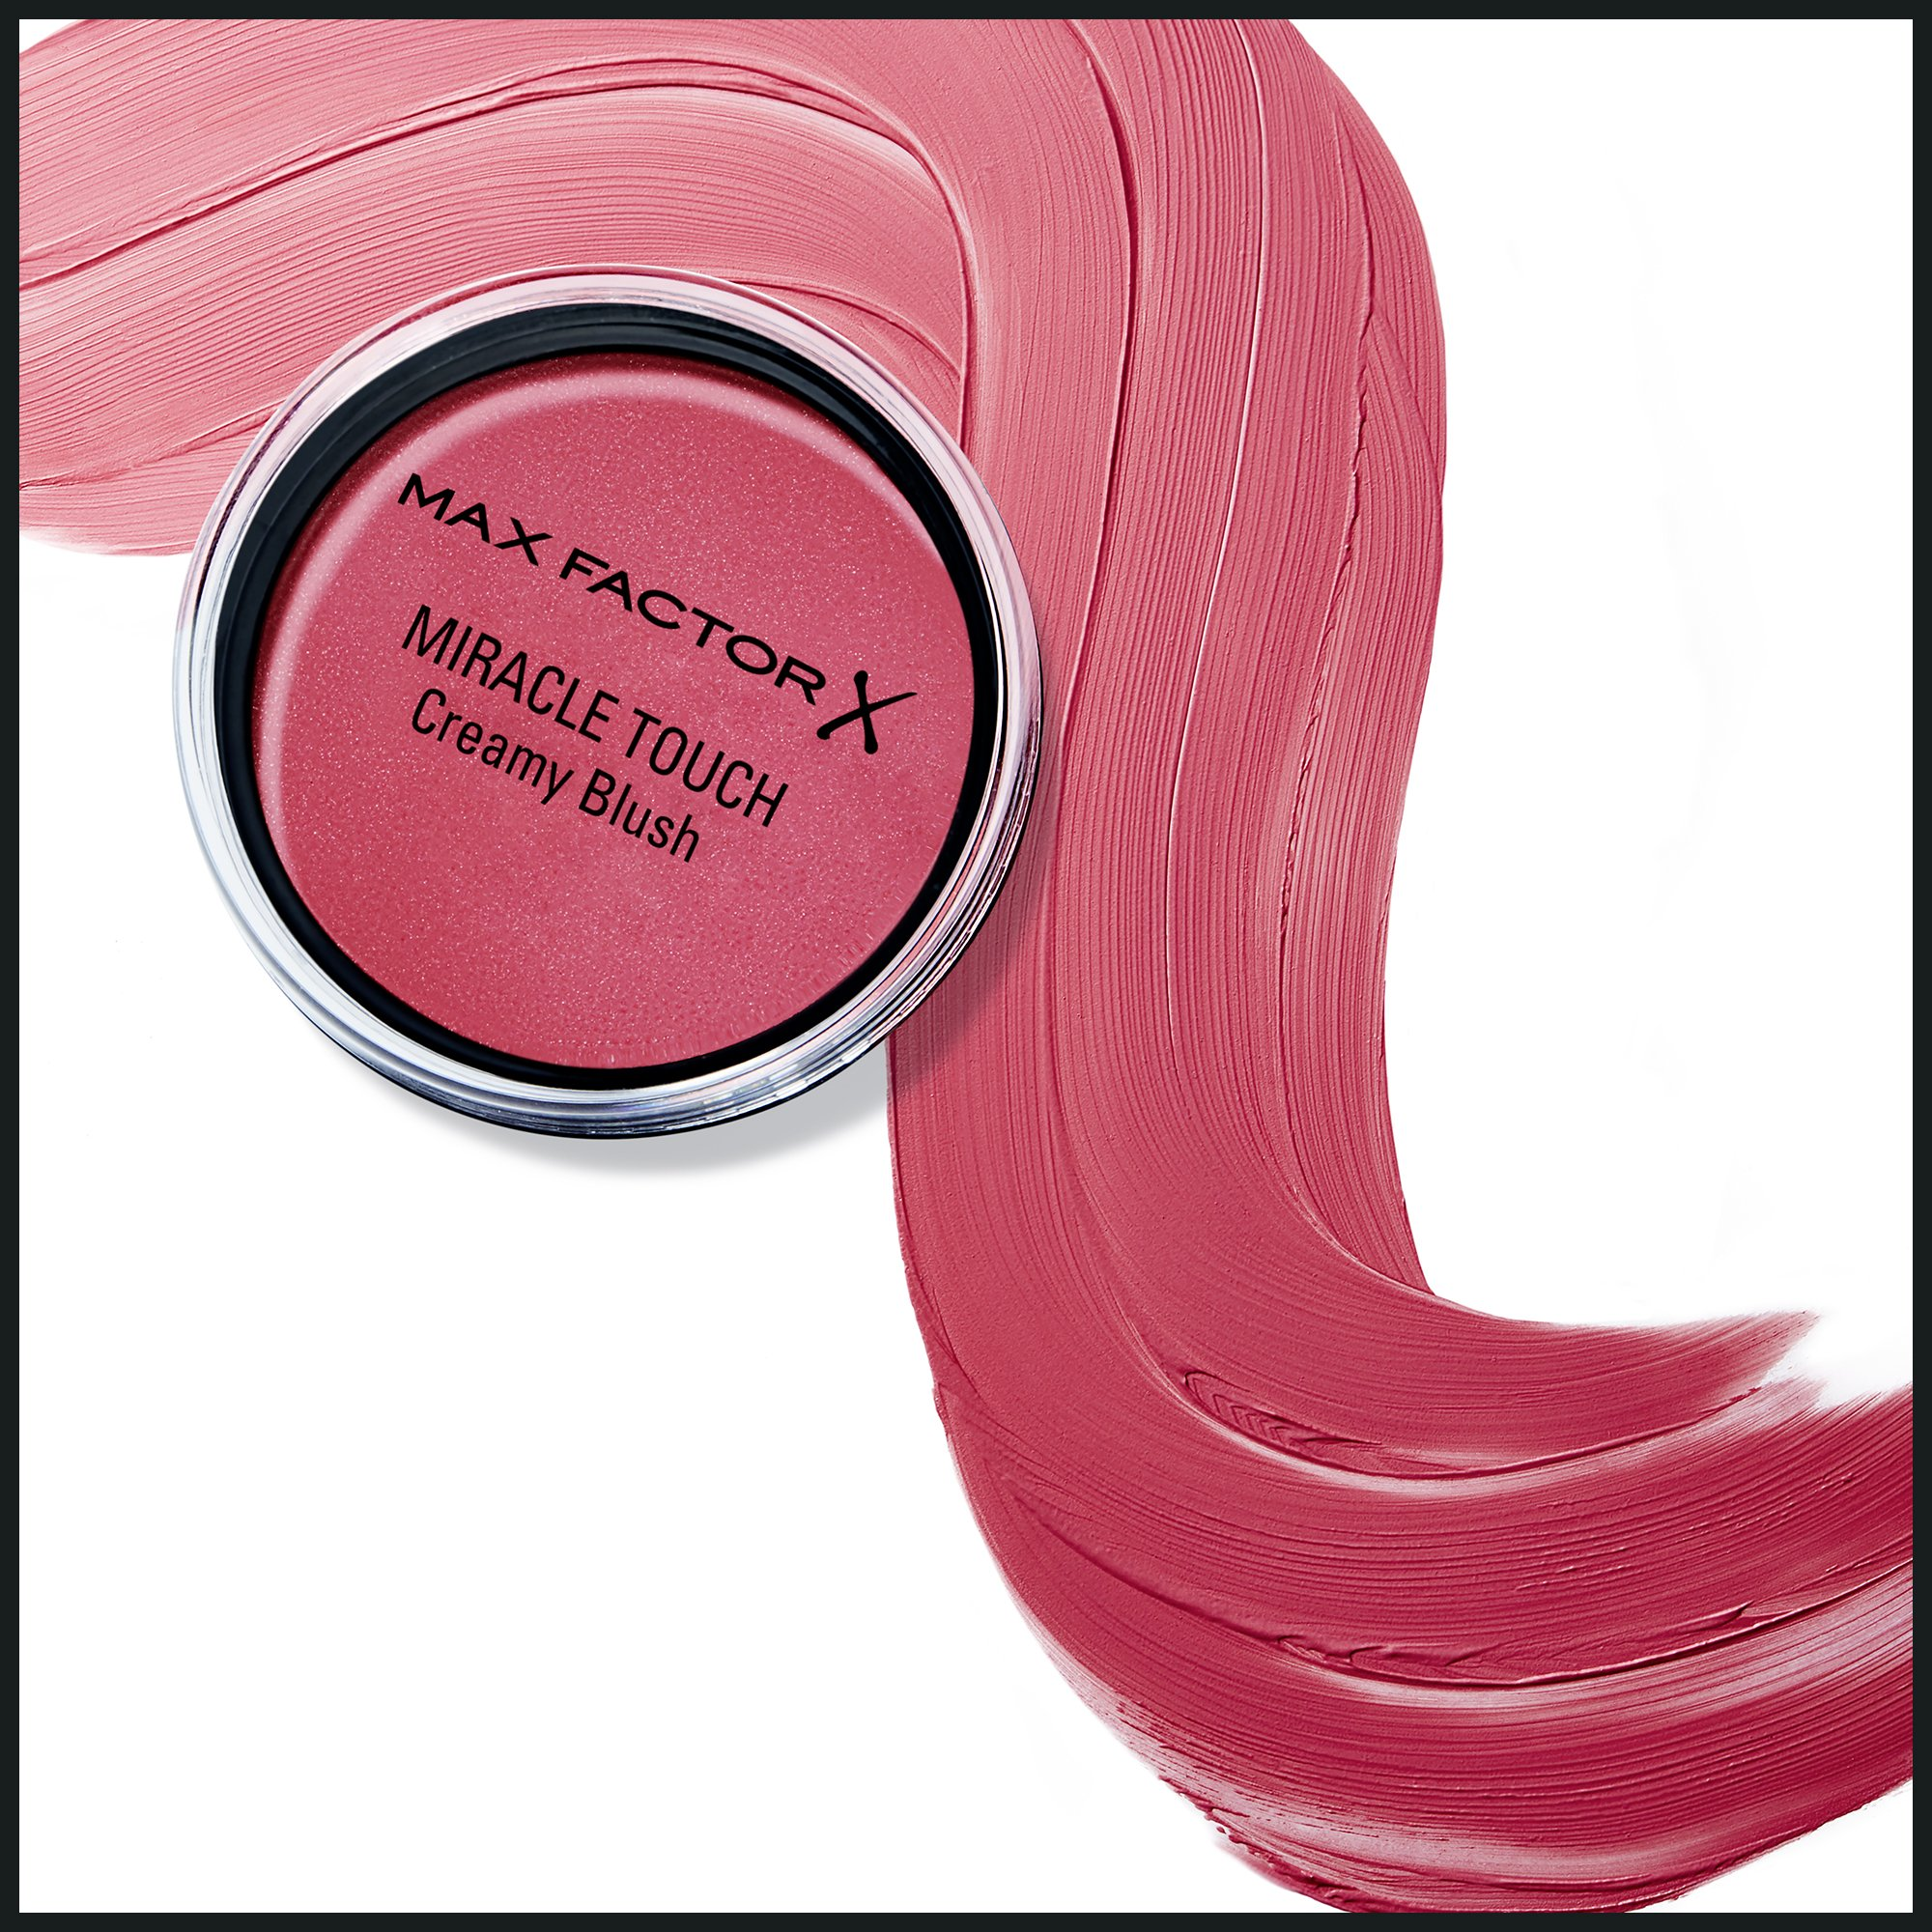 Miracle Touch Creamy Blush No. 14 Soft Pink by Max Factor for Women - 11.5 gram Blush by Max Factor (Image #4)